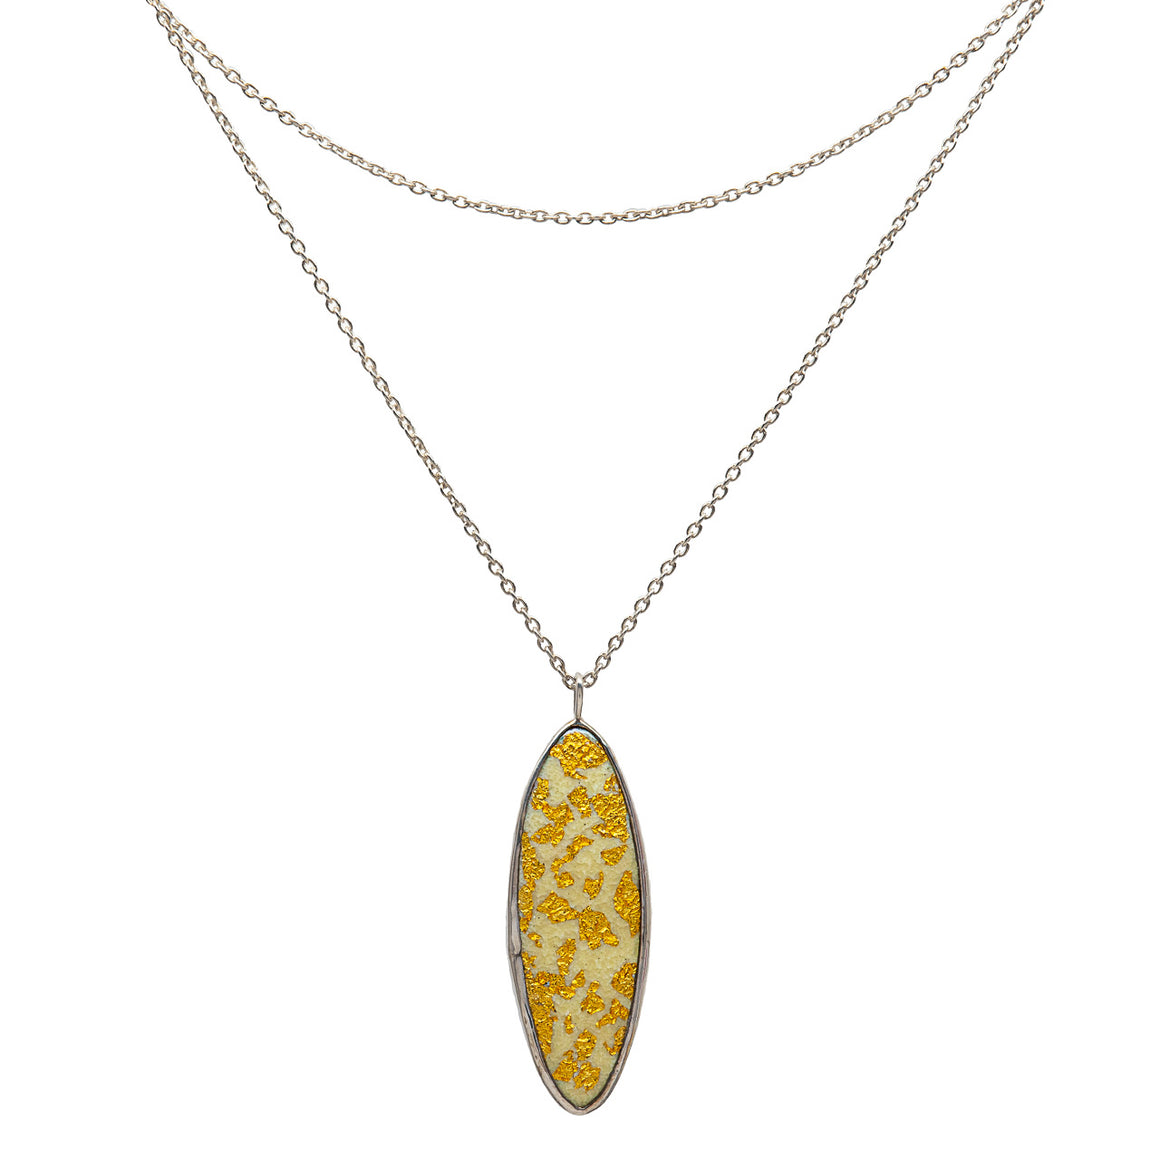 24kt gold leaf multi layer necklace